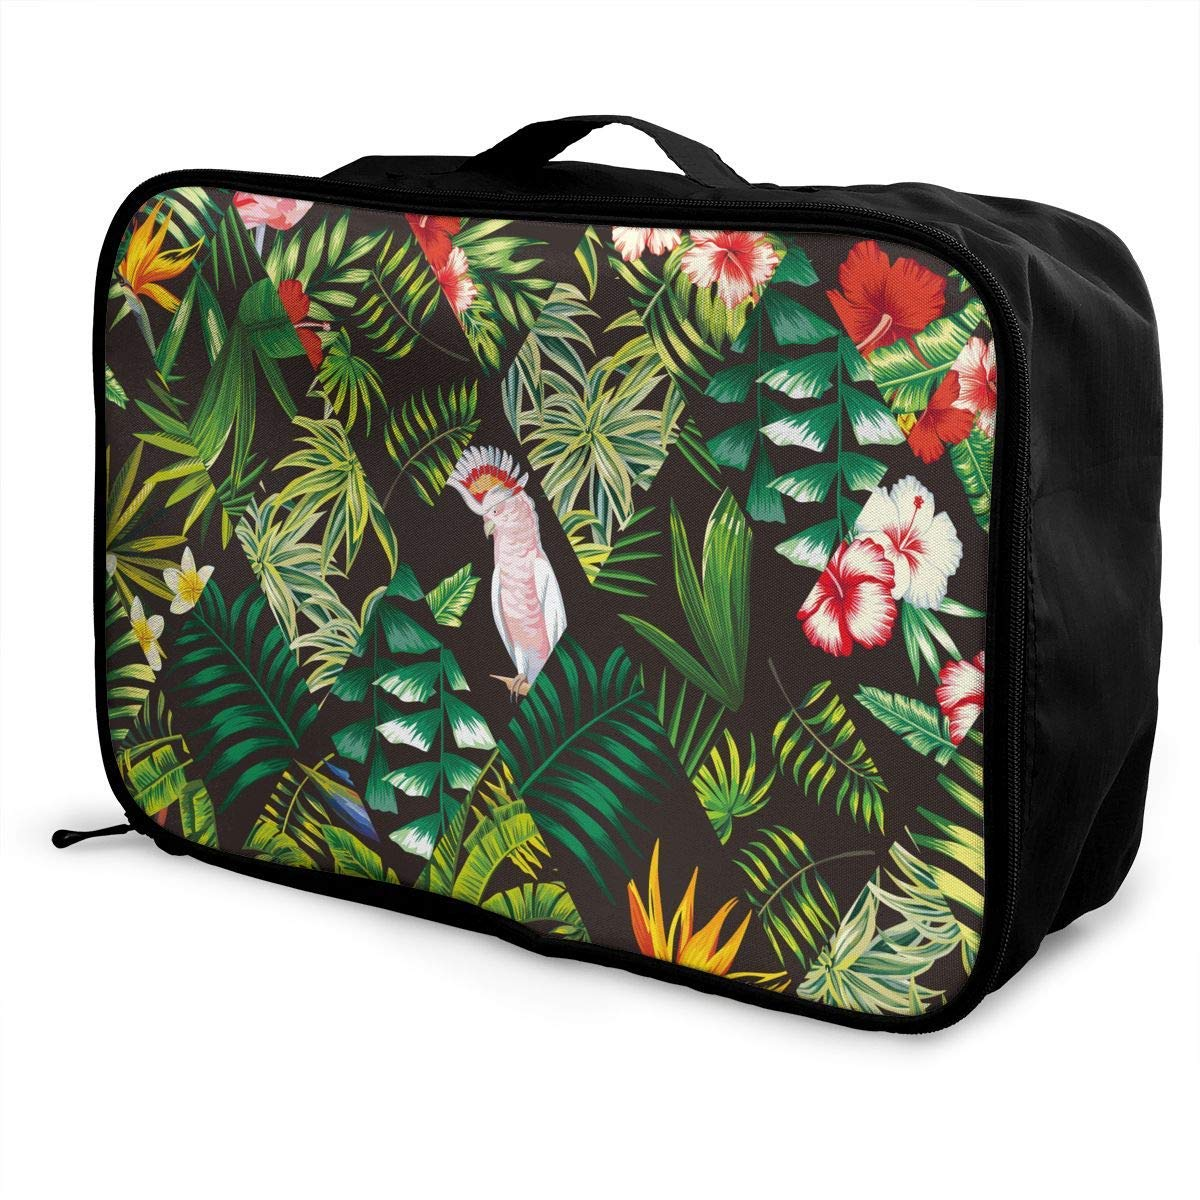 Parrot Pink Flamingo Palm Leaf Travel Duffel Bag Waterproof Fashion Lightweight Large Capacity Portable Duffel Bag for Men /& Women JTRVW Luggage Bags for Travel